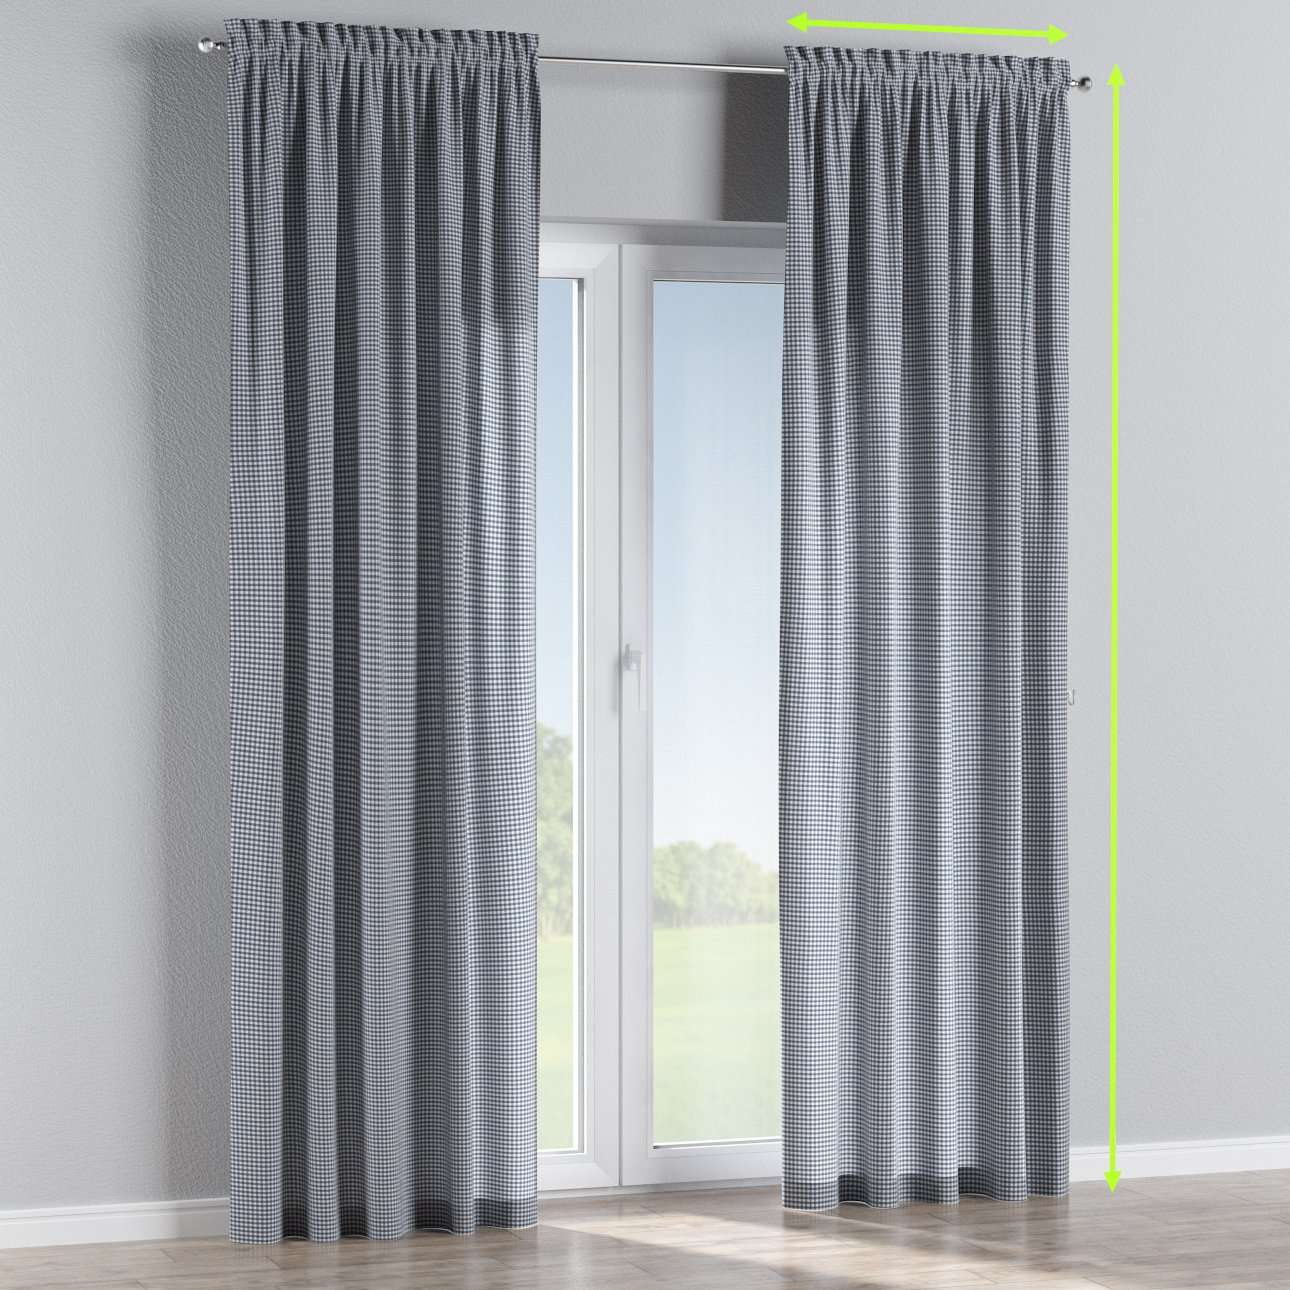 Slot and frill curtains in collection Quadro, fabric: 136-00